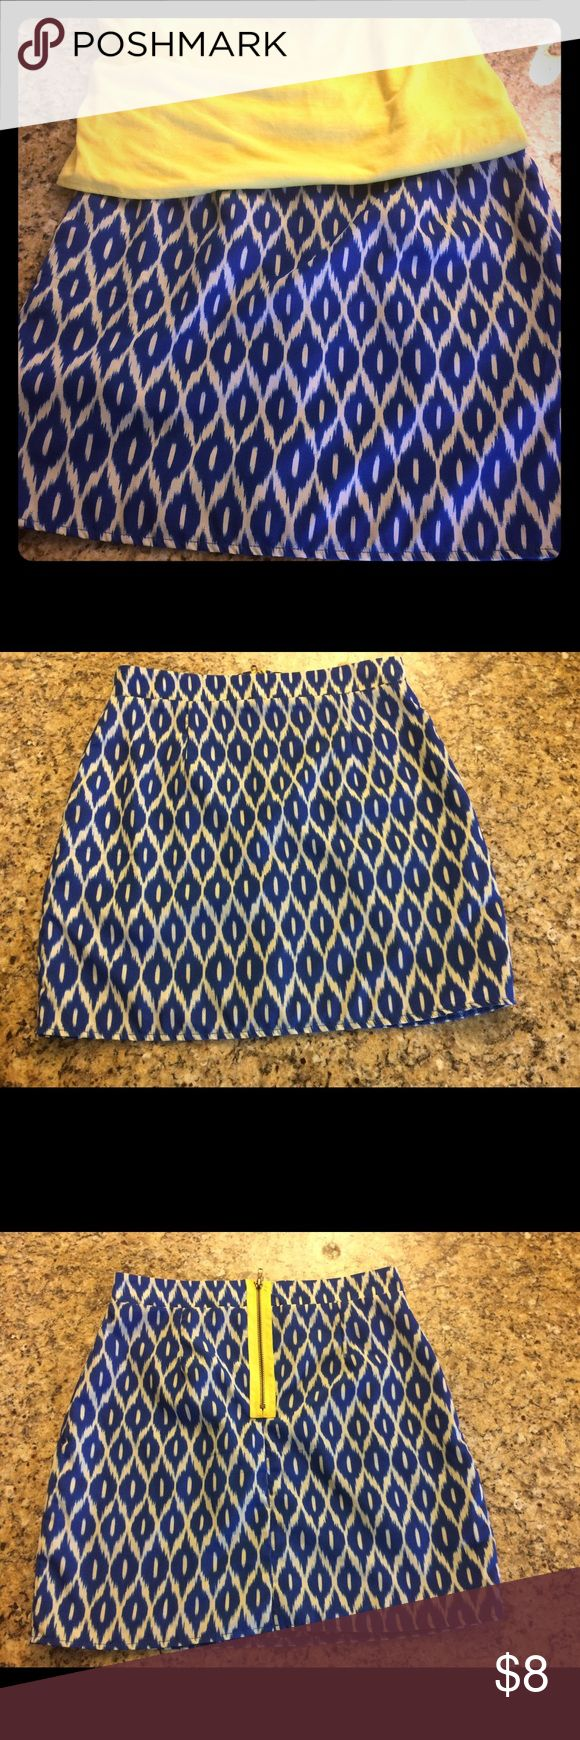 Adorable Women's Blue and White Skirt Blue and White design with a yellow zipper for a dash of color! Perfect for the weekend or evening 🍹 drinks! 100% polyester, easy care! Annabella Skirts Midi